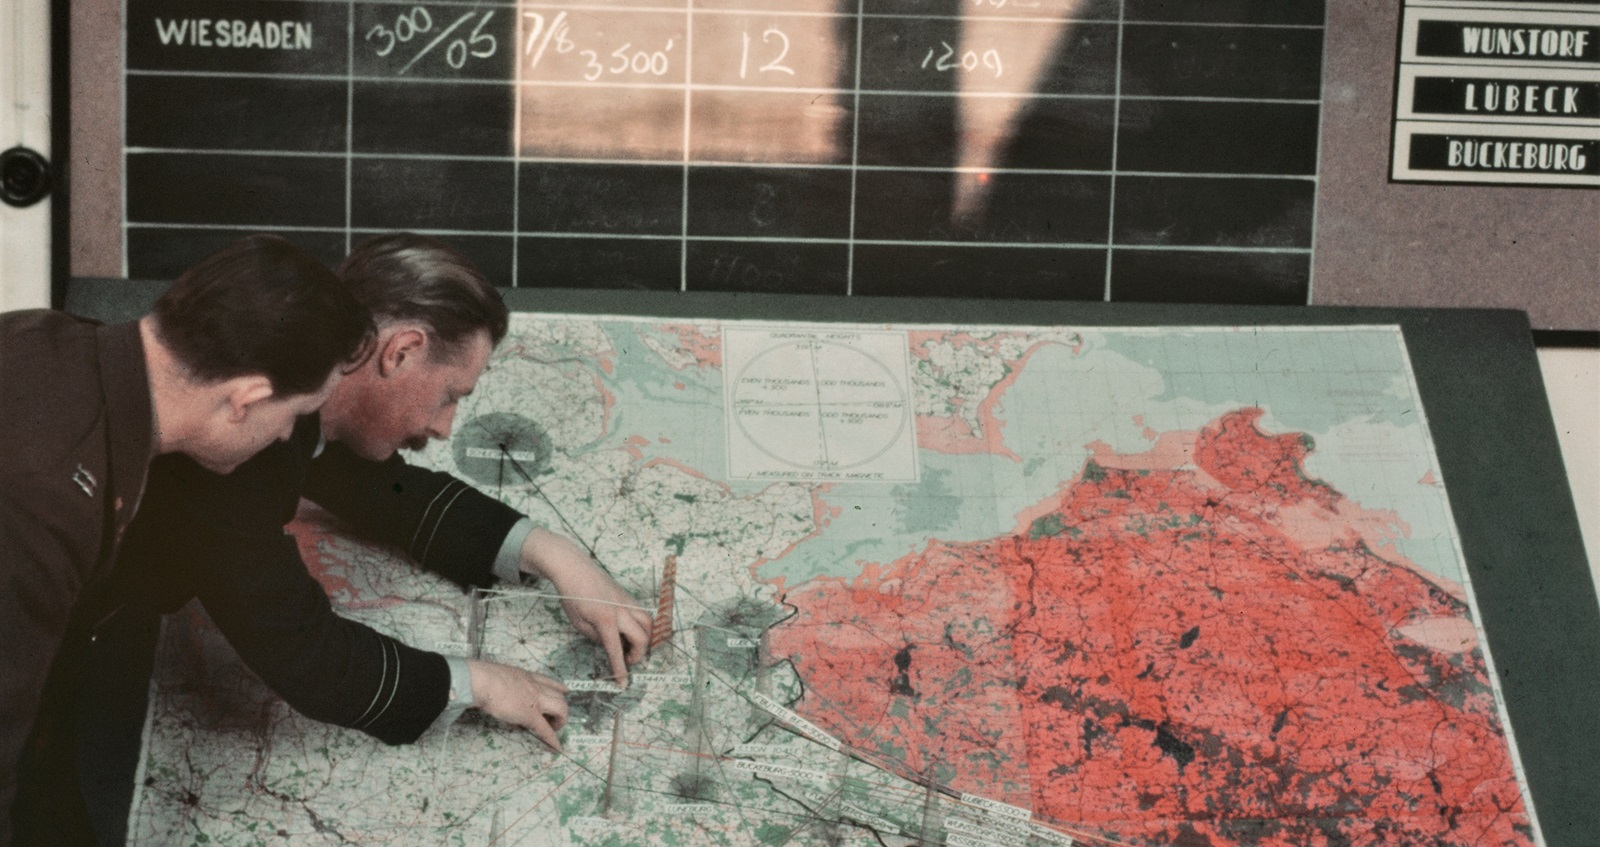 British and American air force officers consult an operations plan giving routes and heights of all aircraft in and out of the Berlin area during the Airlift.